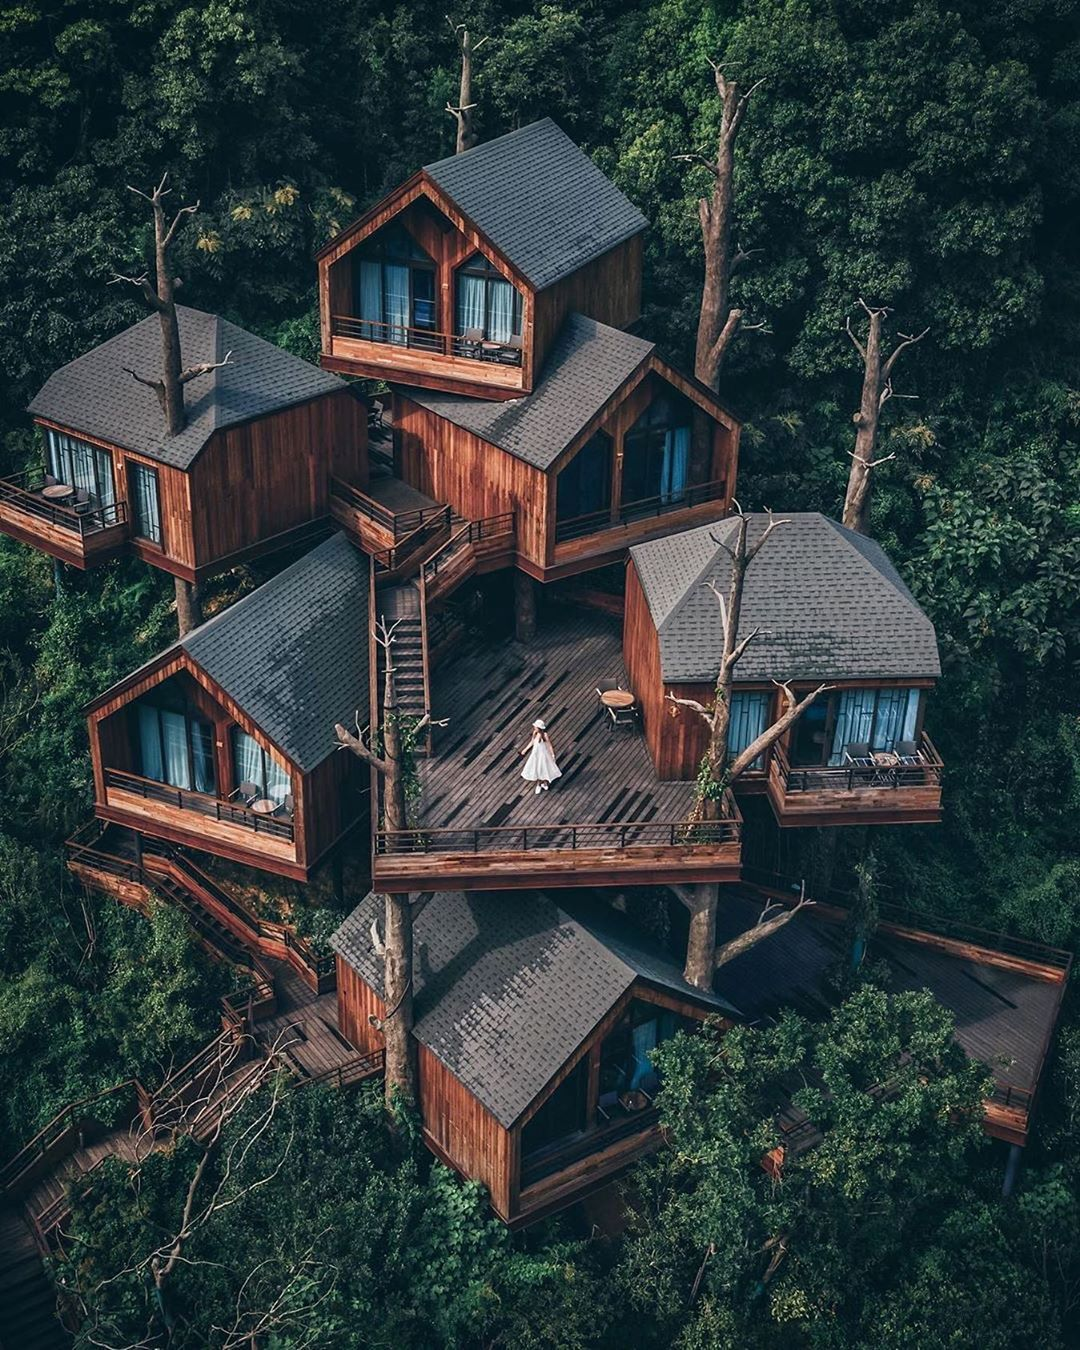 Earth Focus On Instagram Cabin Dreams In China Photo By Youknowcyc Explore Share Inspire Earthfocus Architecture House Architecture Tree House Designs